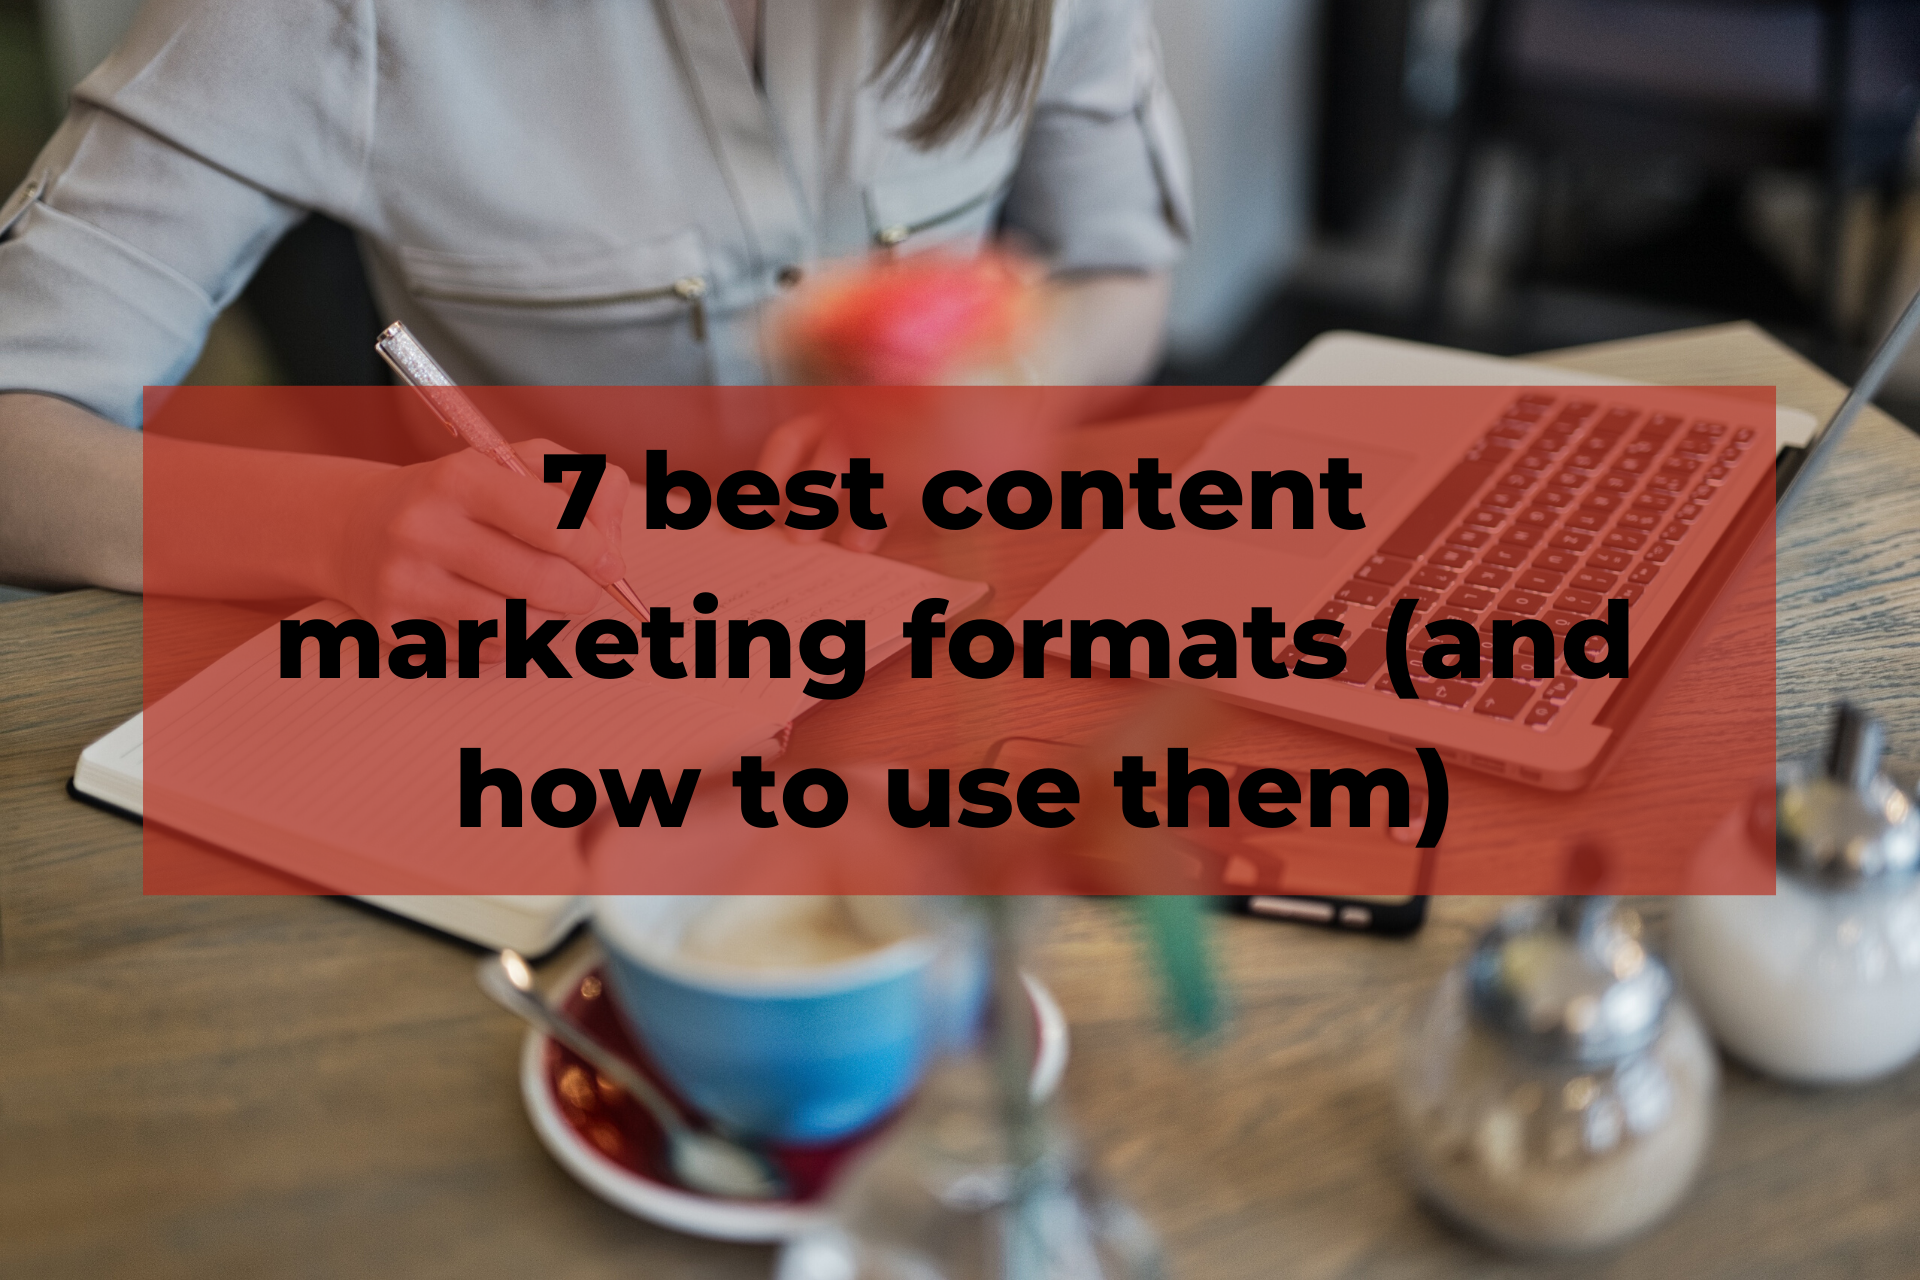 7 best content marketing formats (and how to use them)